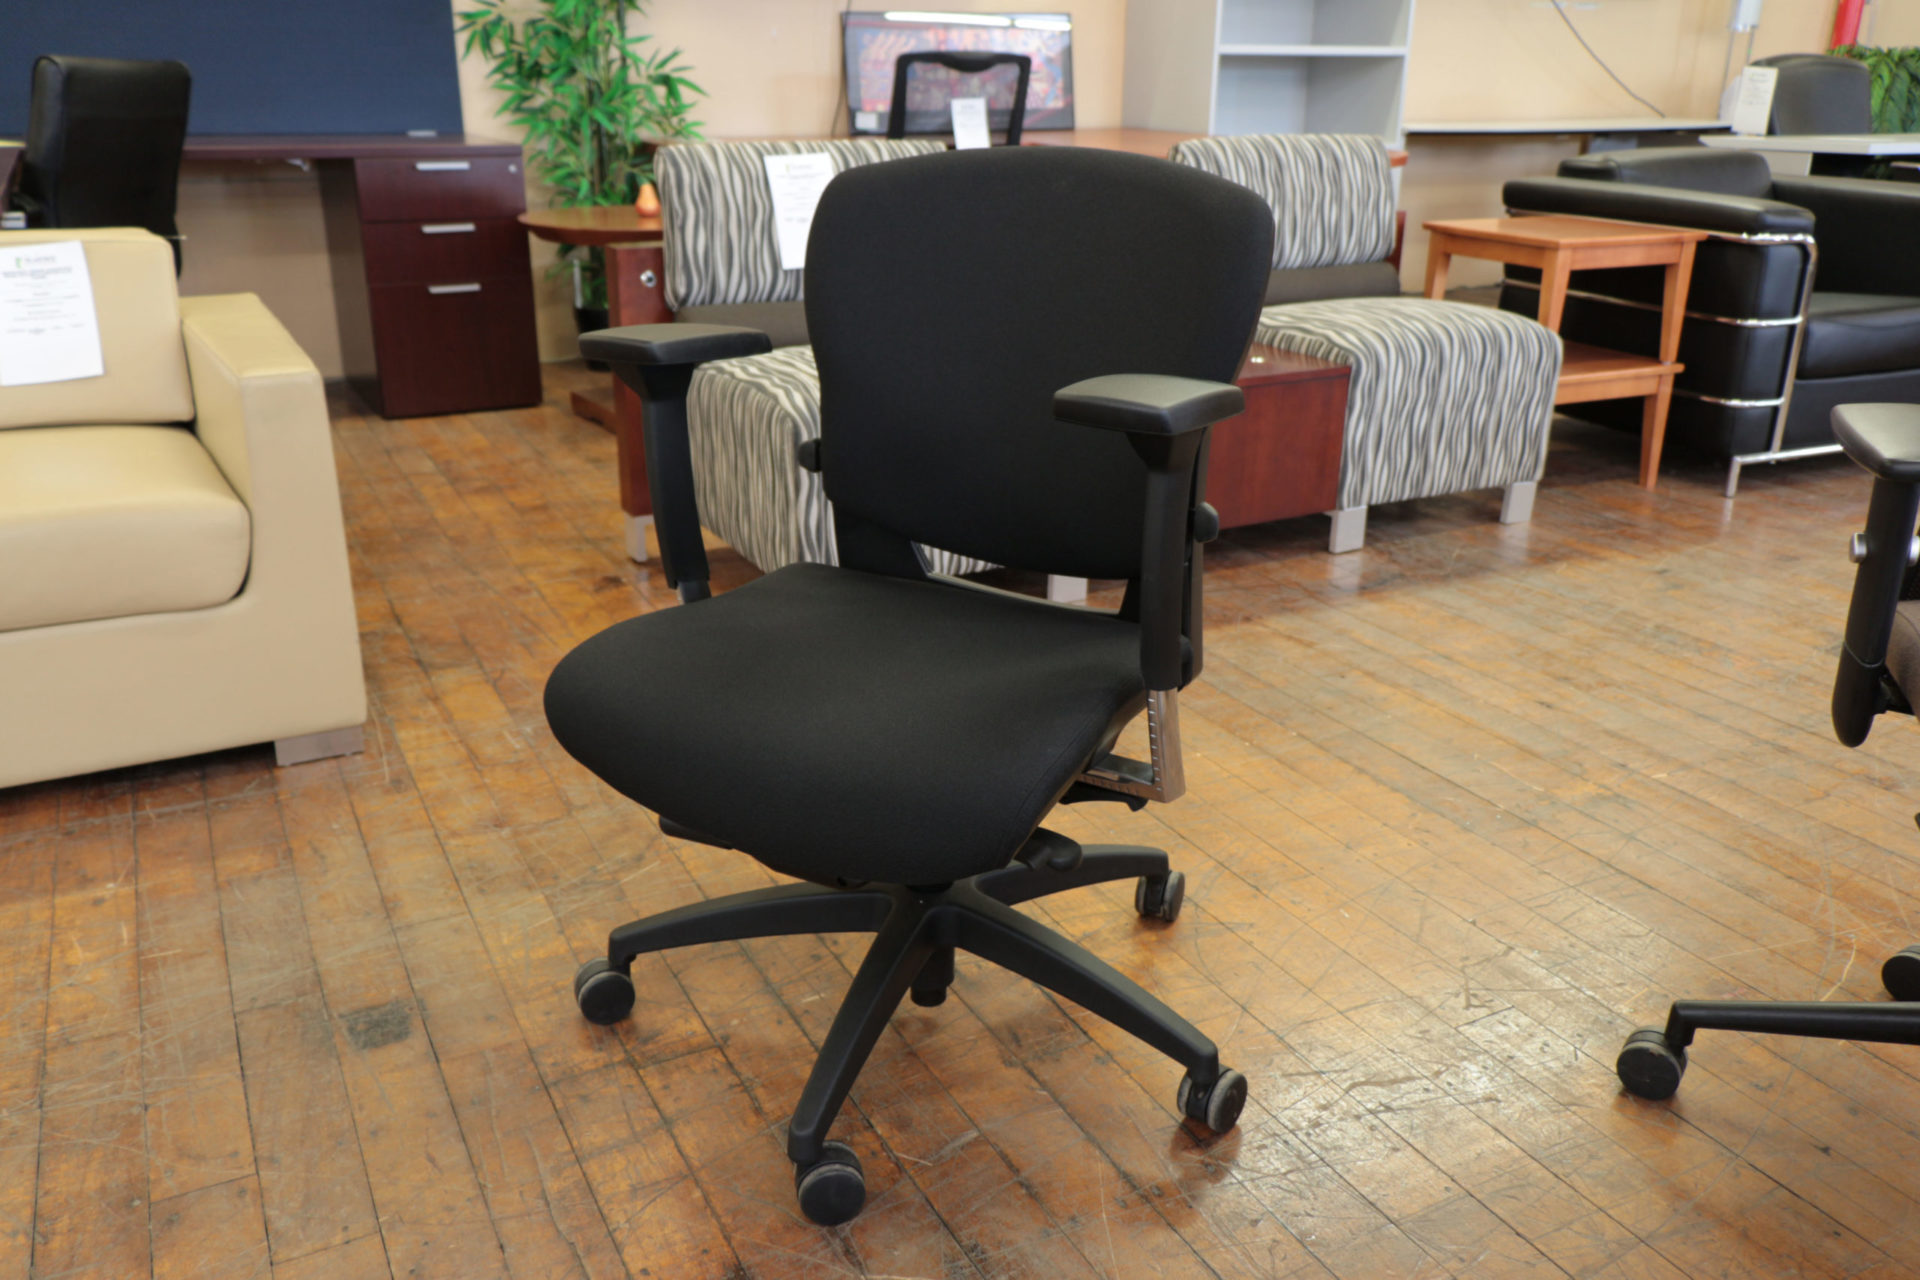 peartreeofficefurniture_peartreeofficefurniture_peartreeofficefurniture_img_8709.jpg